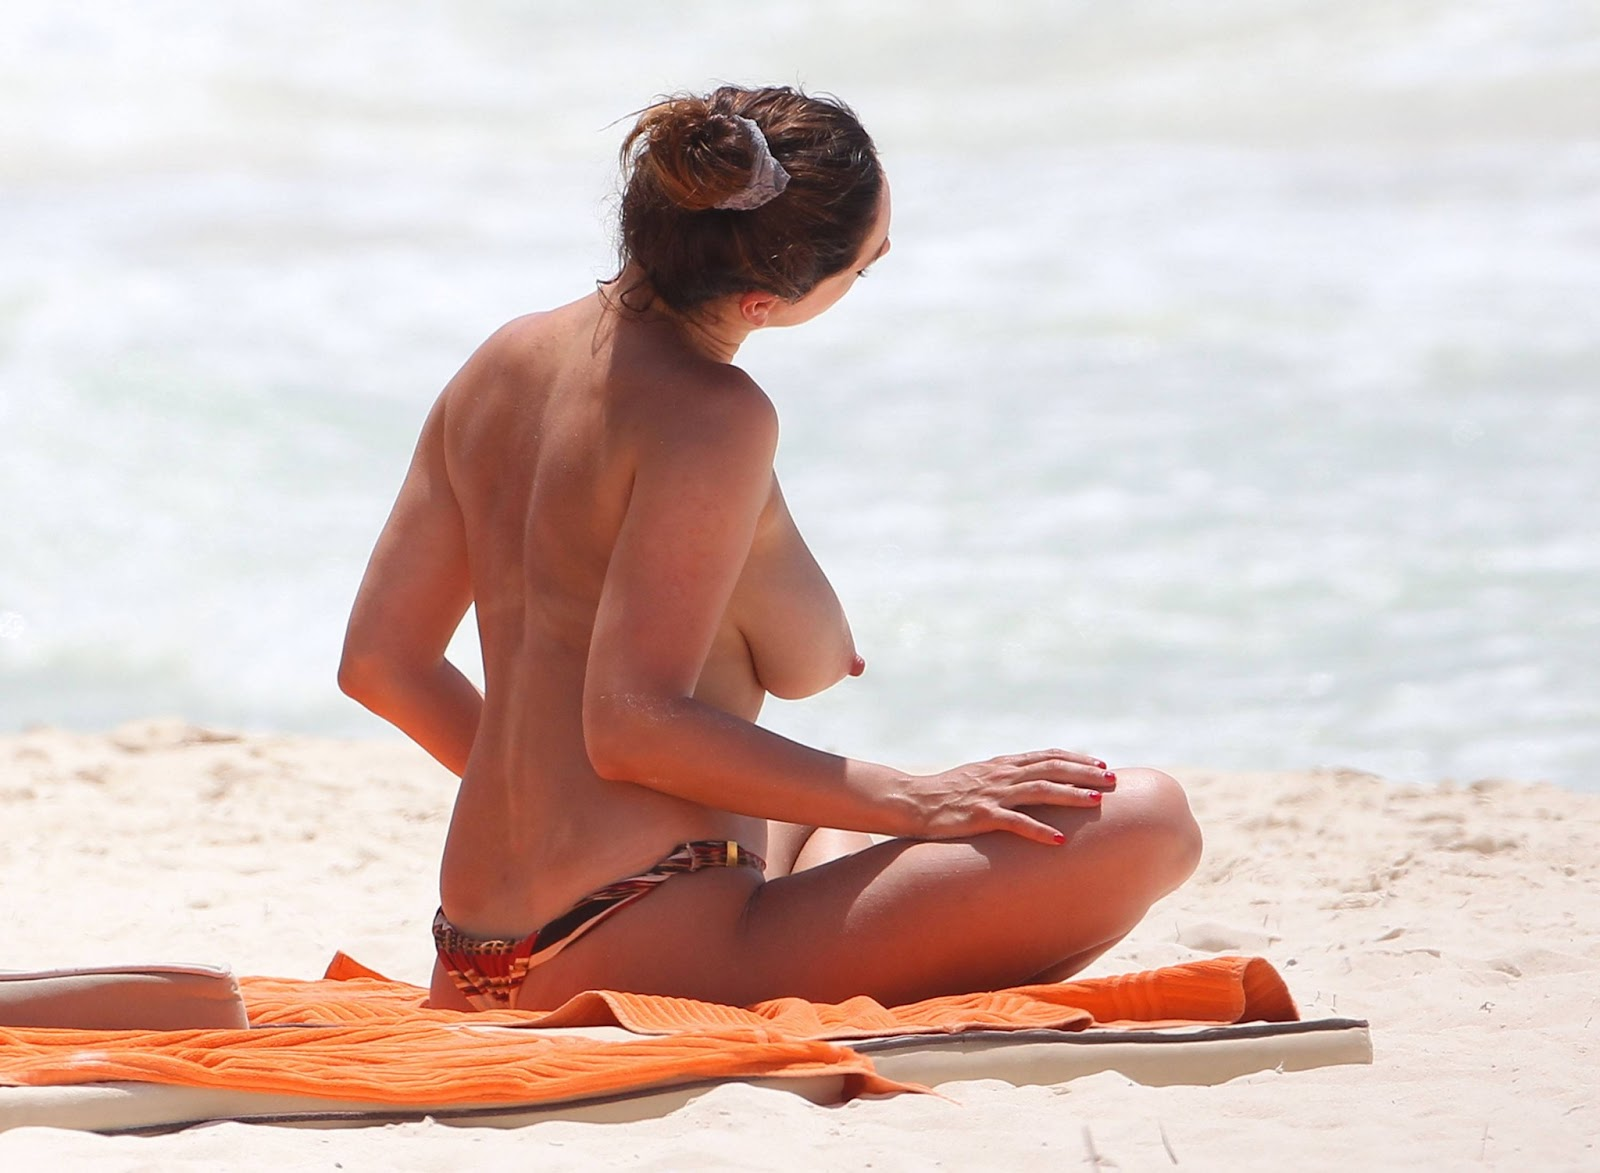 Celebtiger Kelly Brook Topless Bikini Candids In Cancun